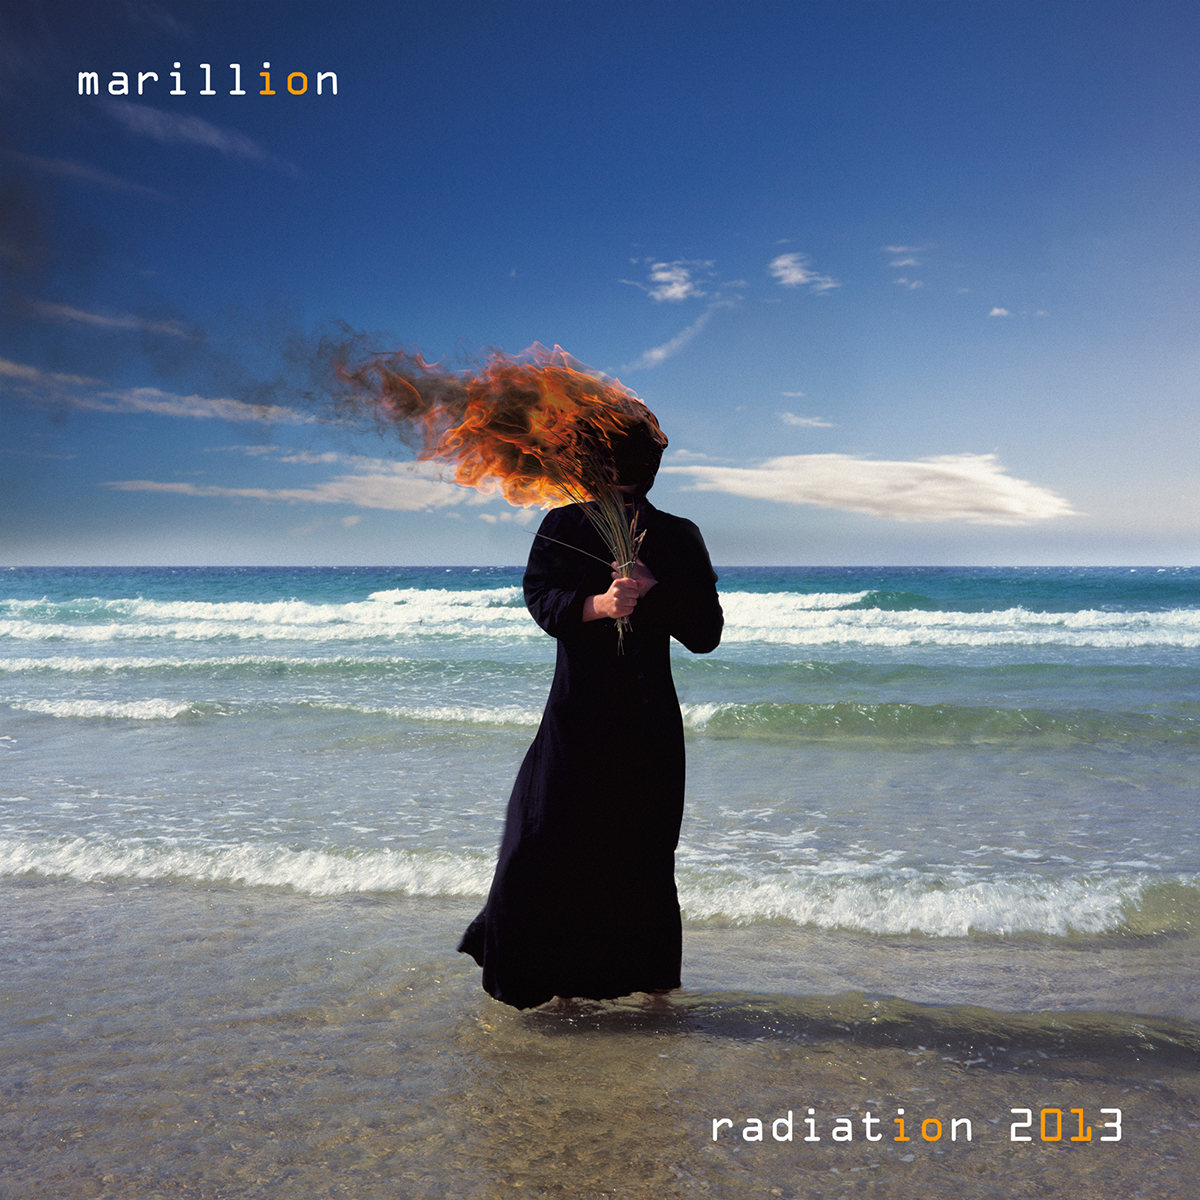 Radiation 2013 320kbps Download Version